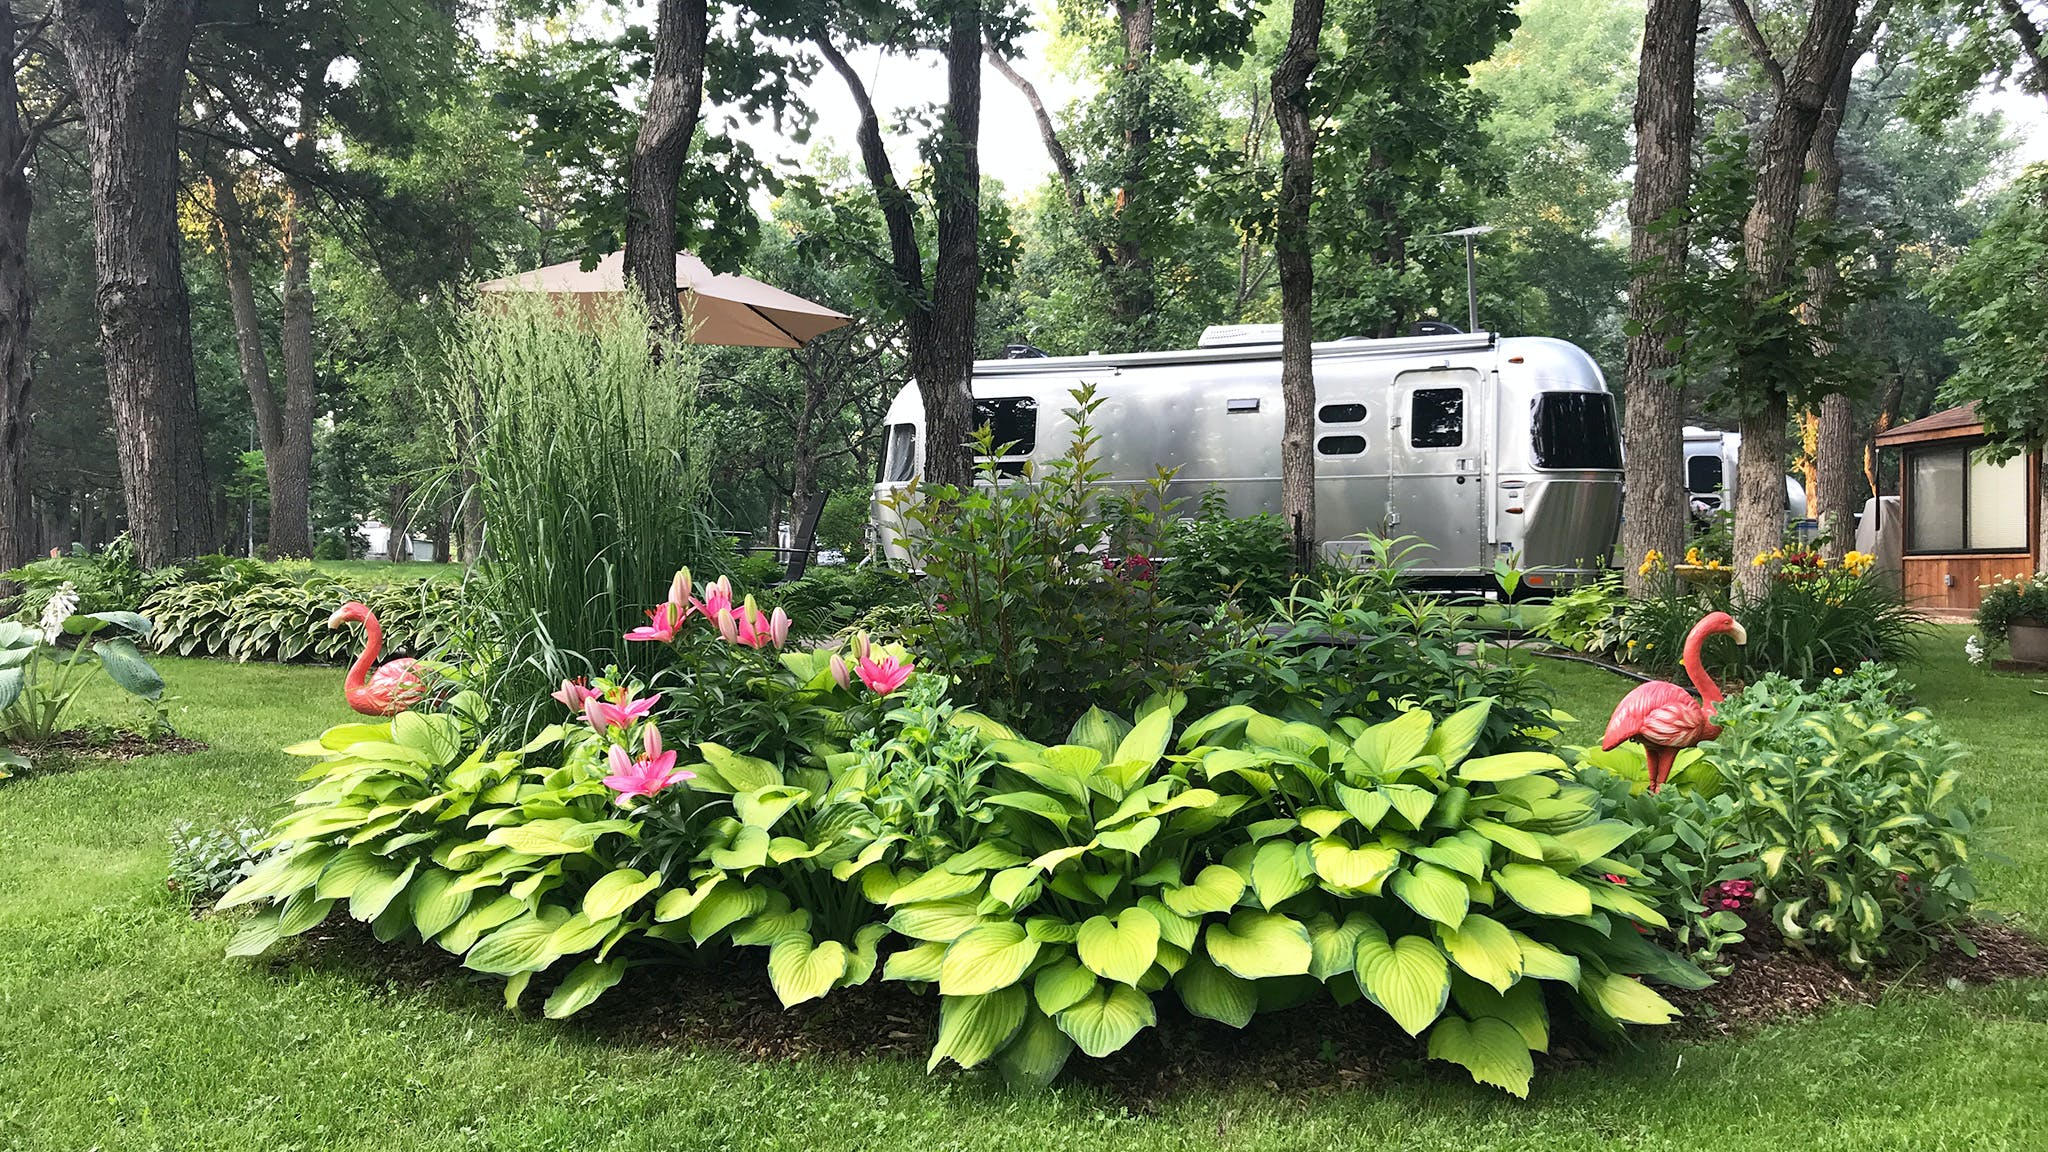 Airstream Travel Trailer in a garden with pink flamingo and trees